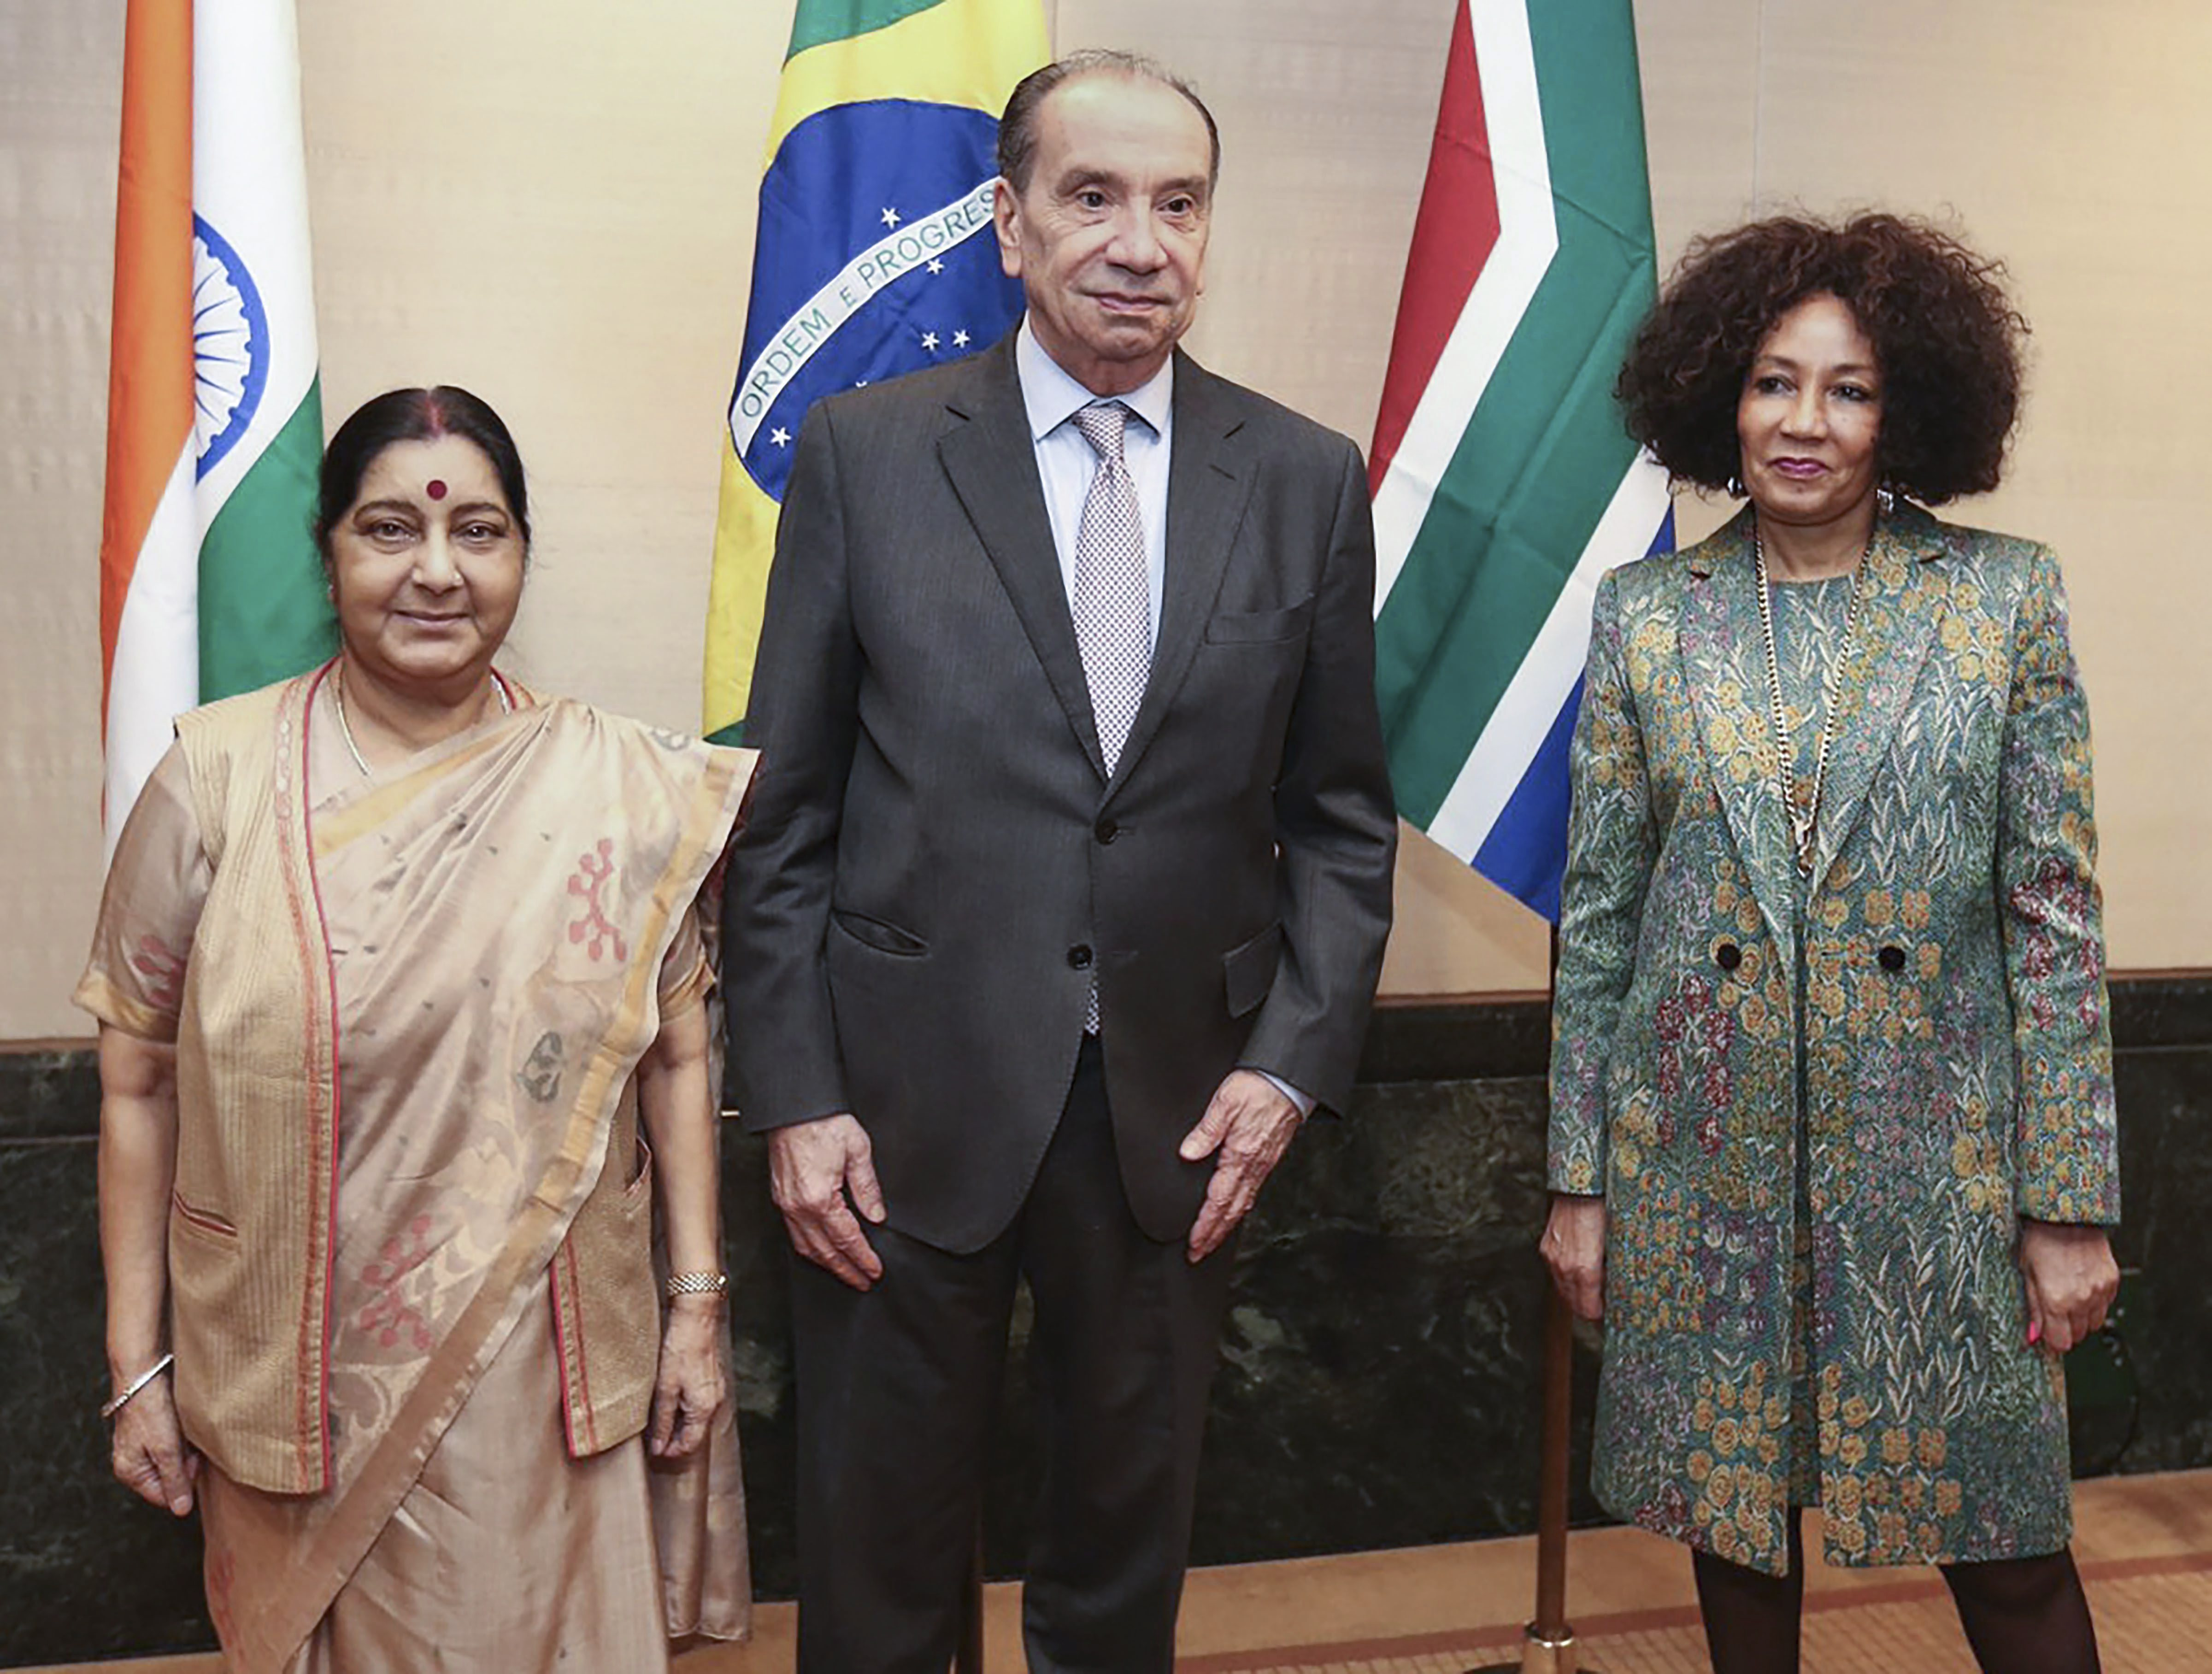 External Affairs Minister Sushma Swaraj with Brazilian Foreign Minister Aloysio and South African Foreign Minister Sisulu at IBSA-India Brazil South Africa meet in New York - PTI